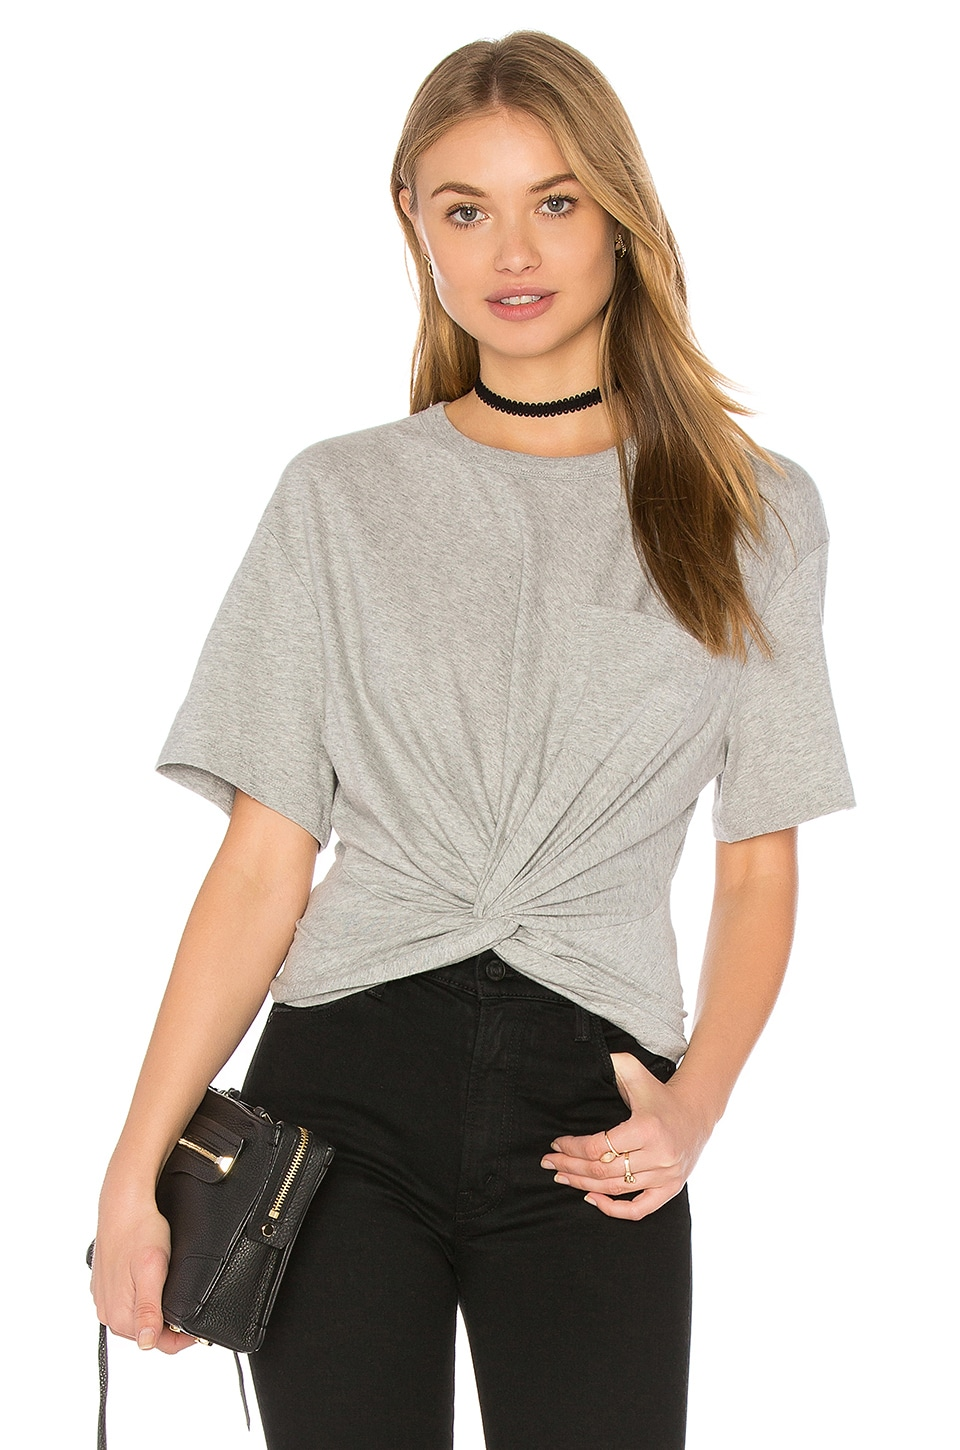 58114cb565439 T by Alexander Wang Front Twist Short Sleeve Tee in Heather Grey ...